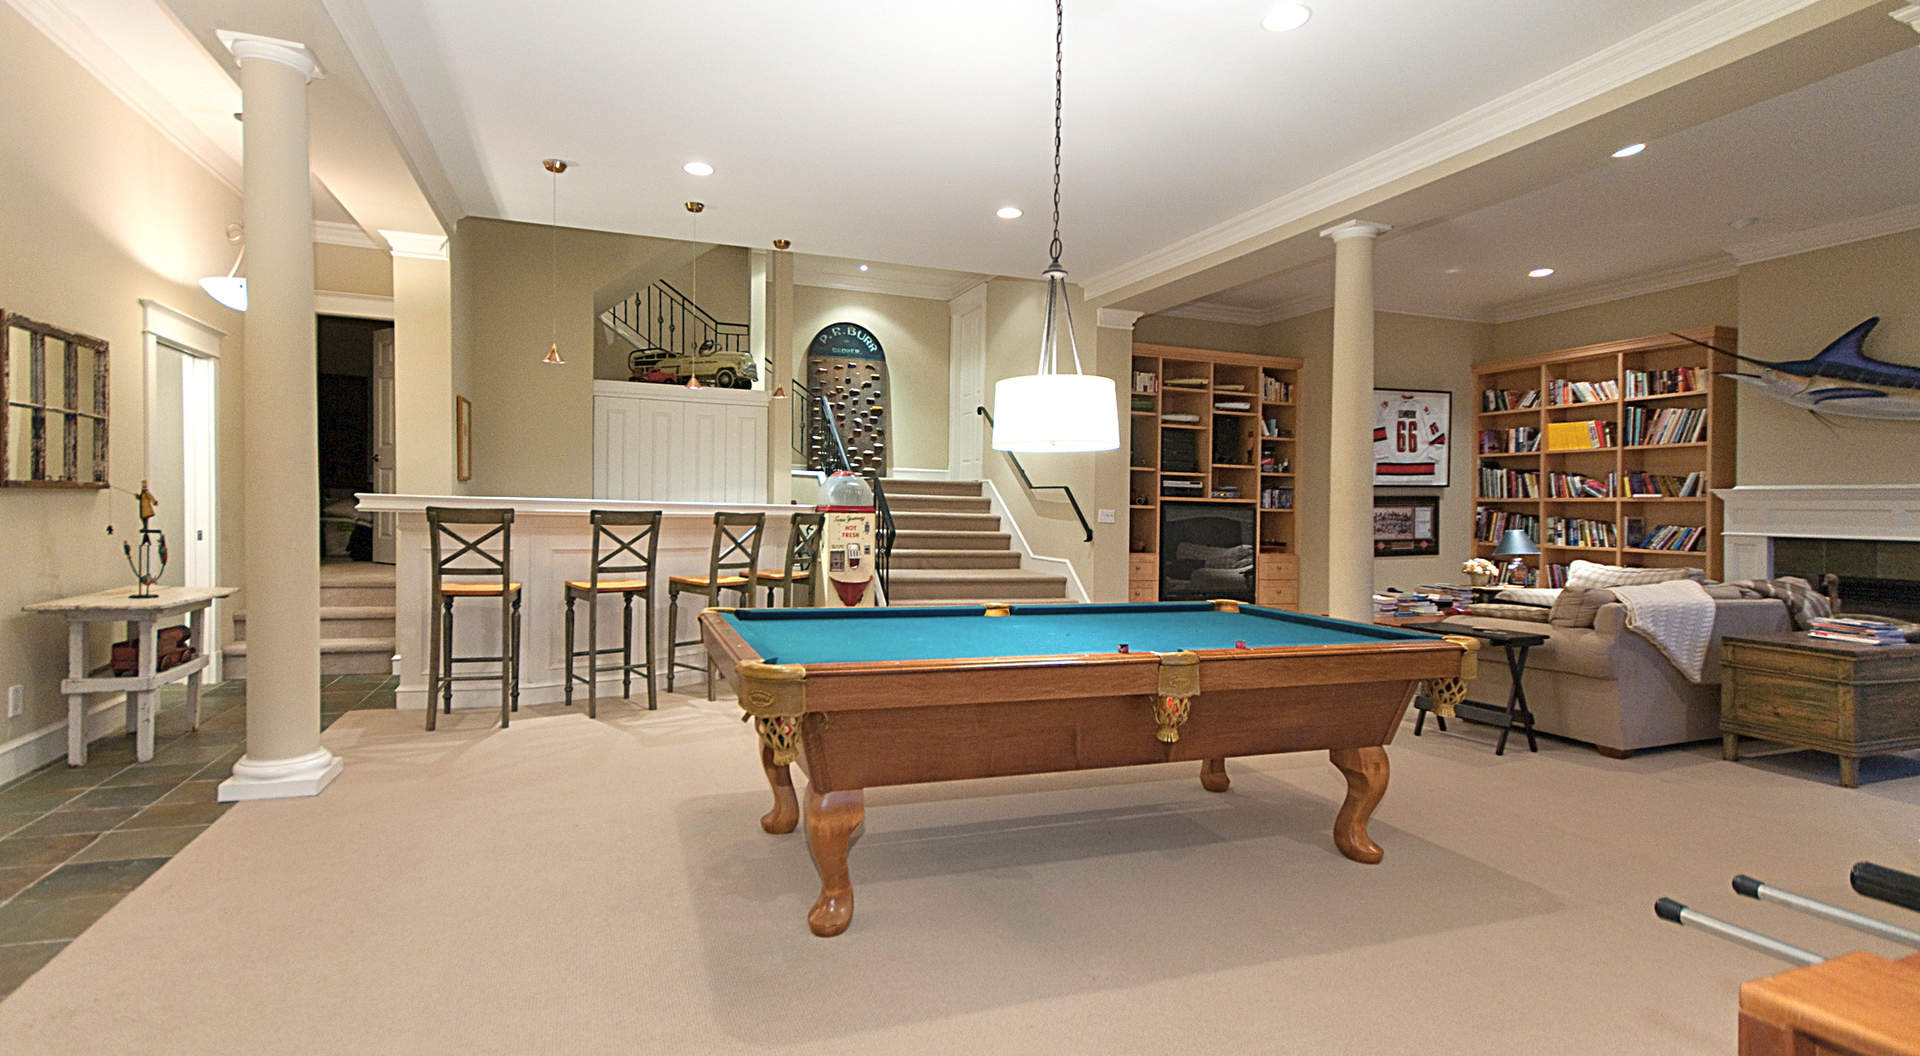 Recreation/ Games Room